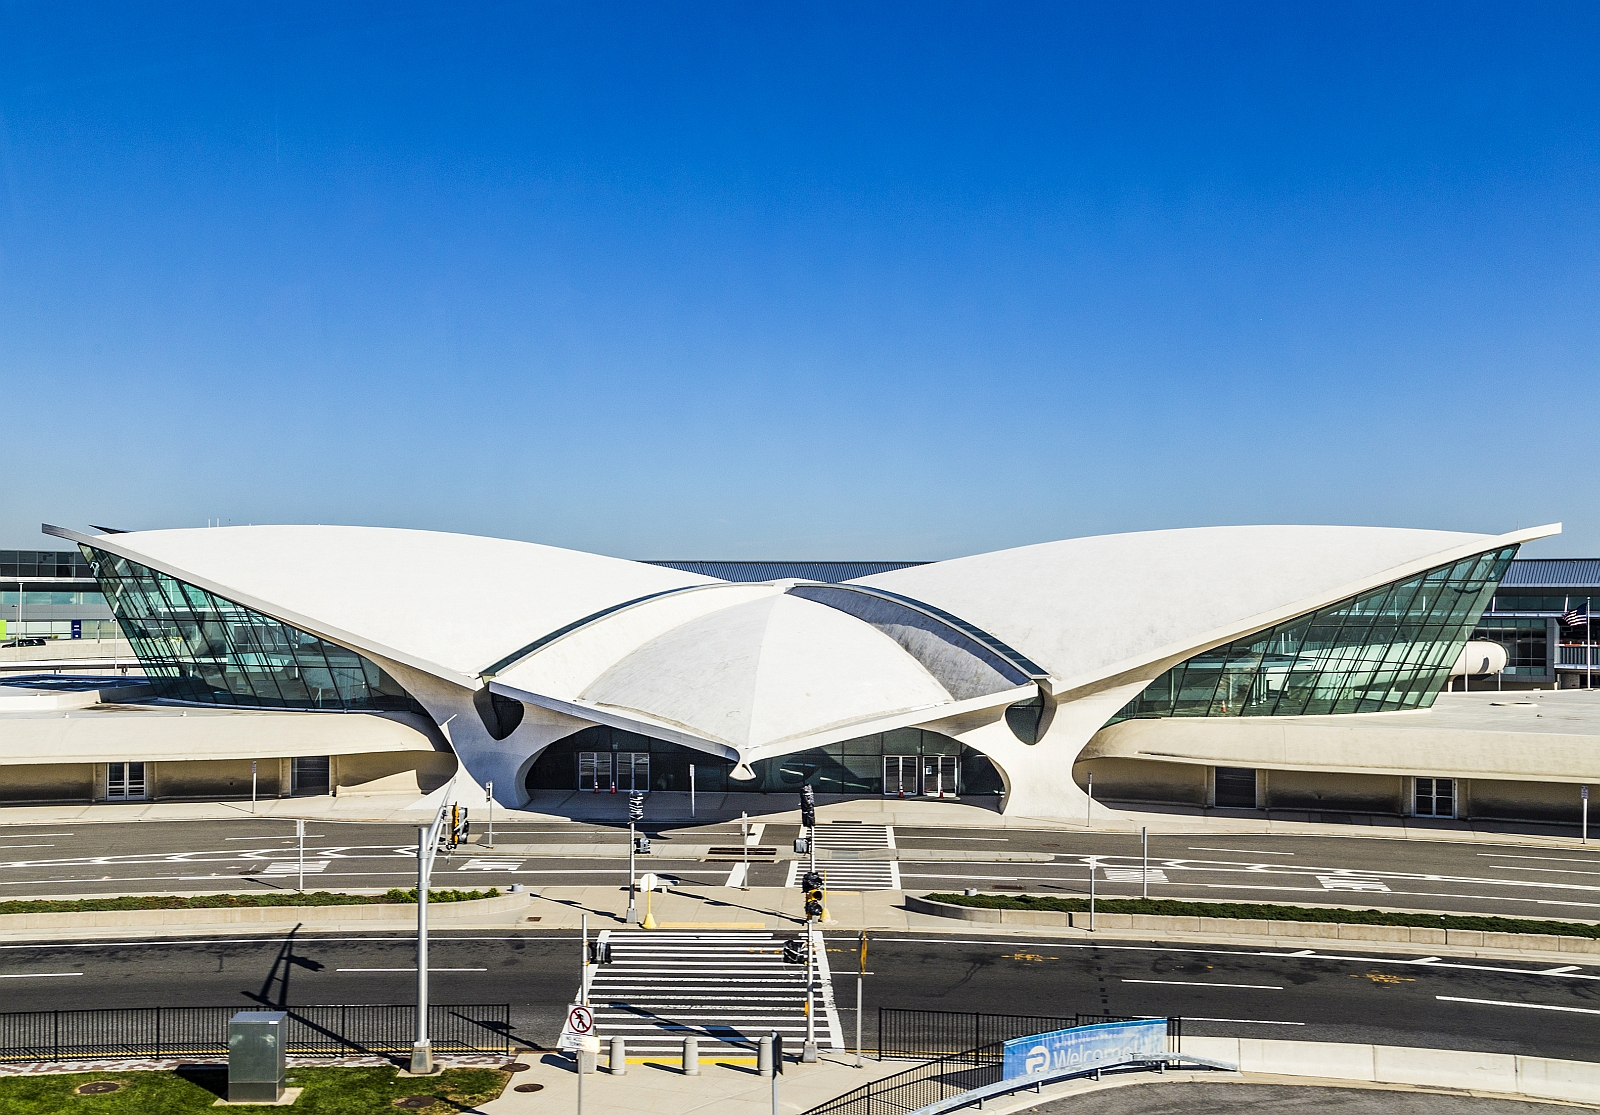 Twa terminal am new yorker jfk airport wird luxushotel for Hotel at jfk terminal